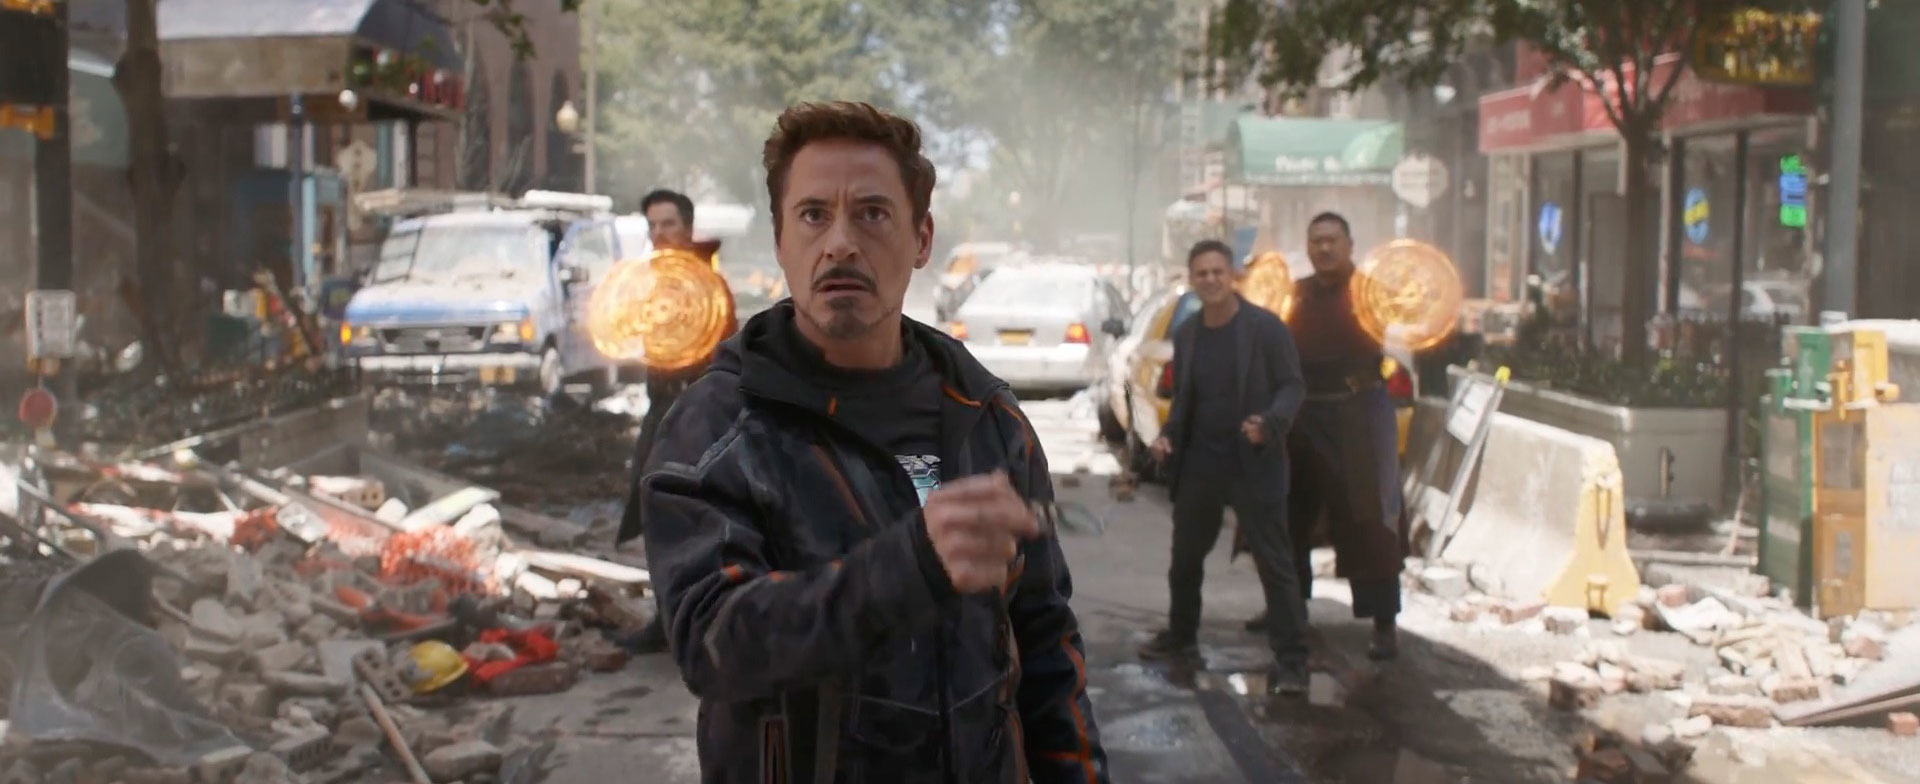 Avengers: Infinity War reveals new Iron Man suit with WINGS